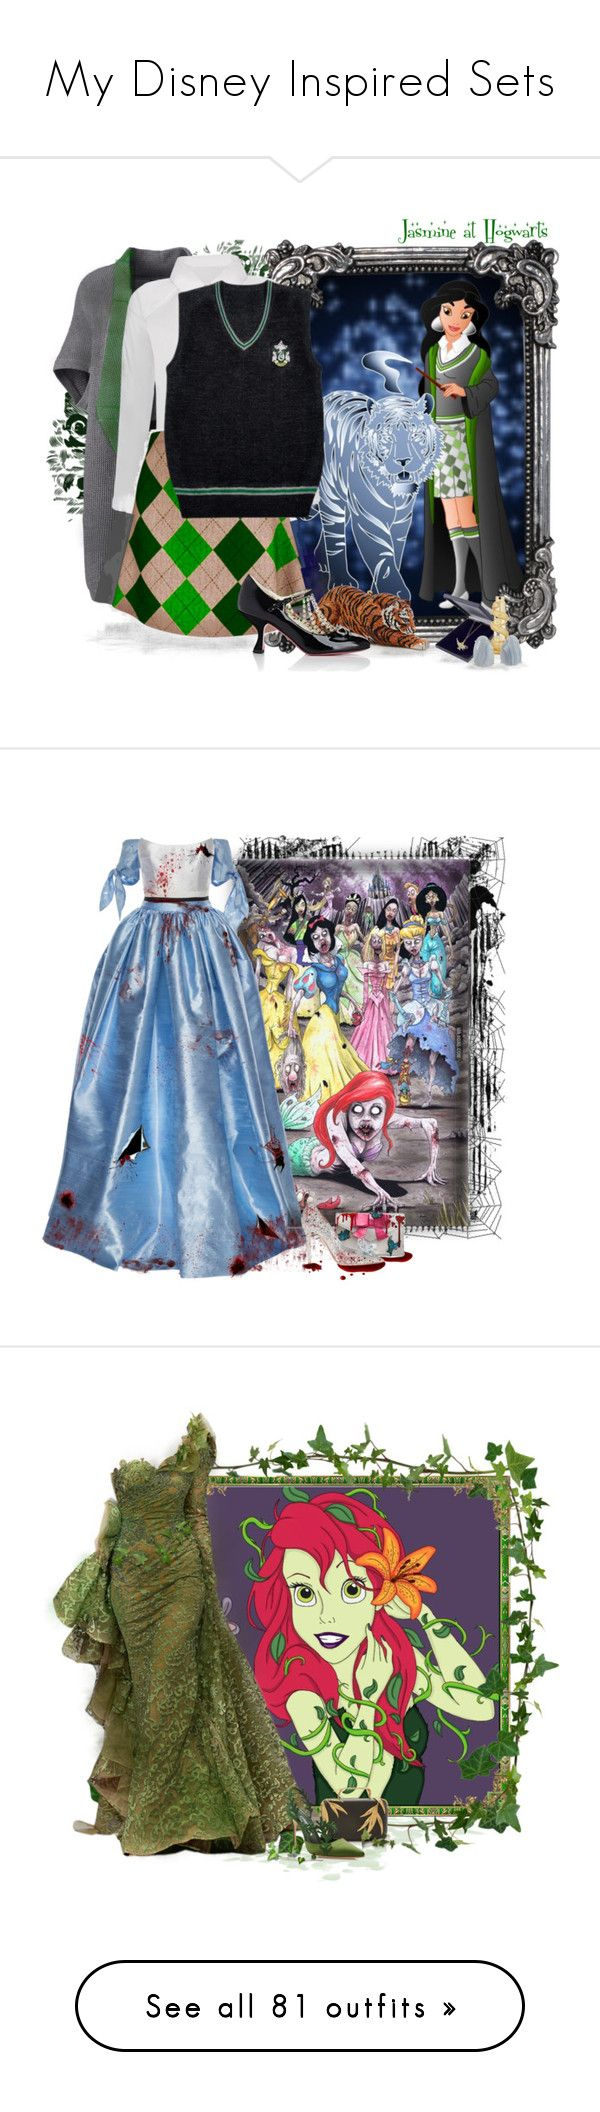 """""""My Disney Inspired Sets"""" by love-n-laughter ❤ liked on Polyvore featuring disney, Lands' End, Gucci, Cathy Waterman, Kilian, plus size clothing, Disney, Lela Rose, Alex Perry and Danielle Nicole"""